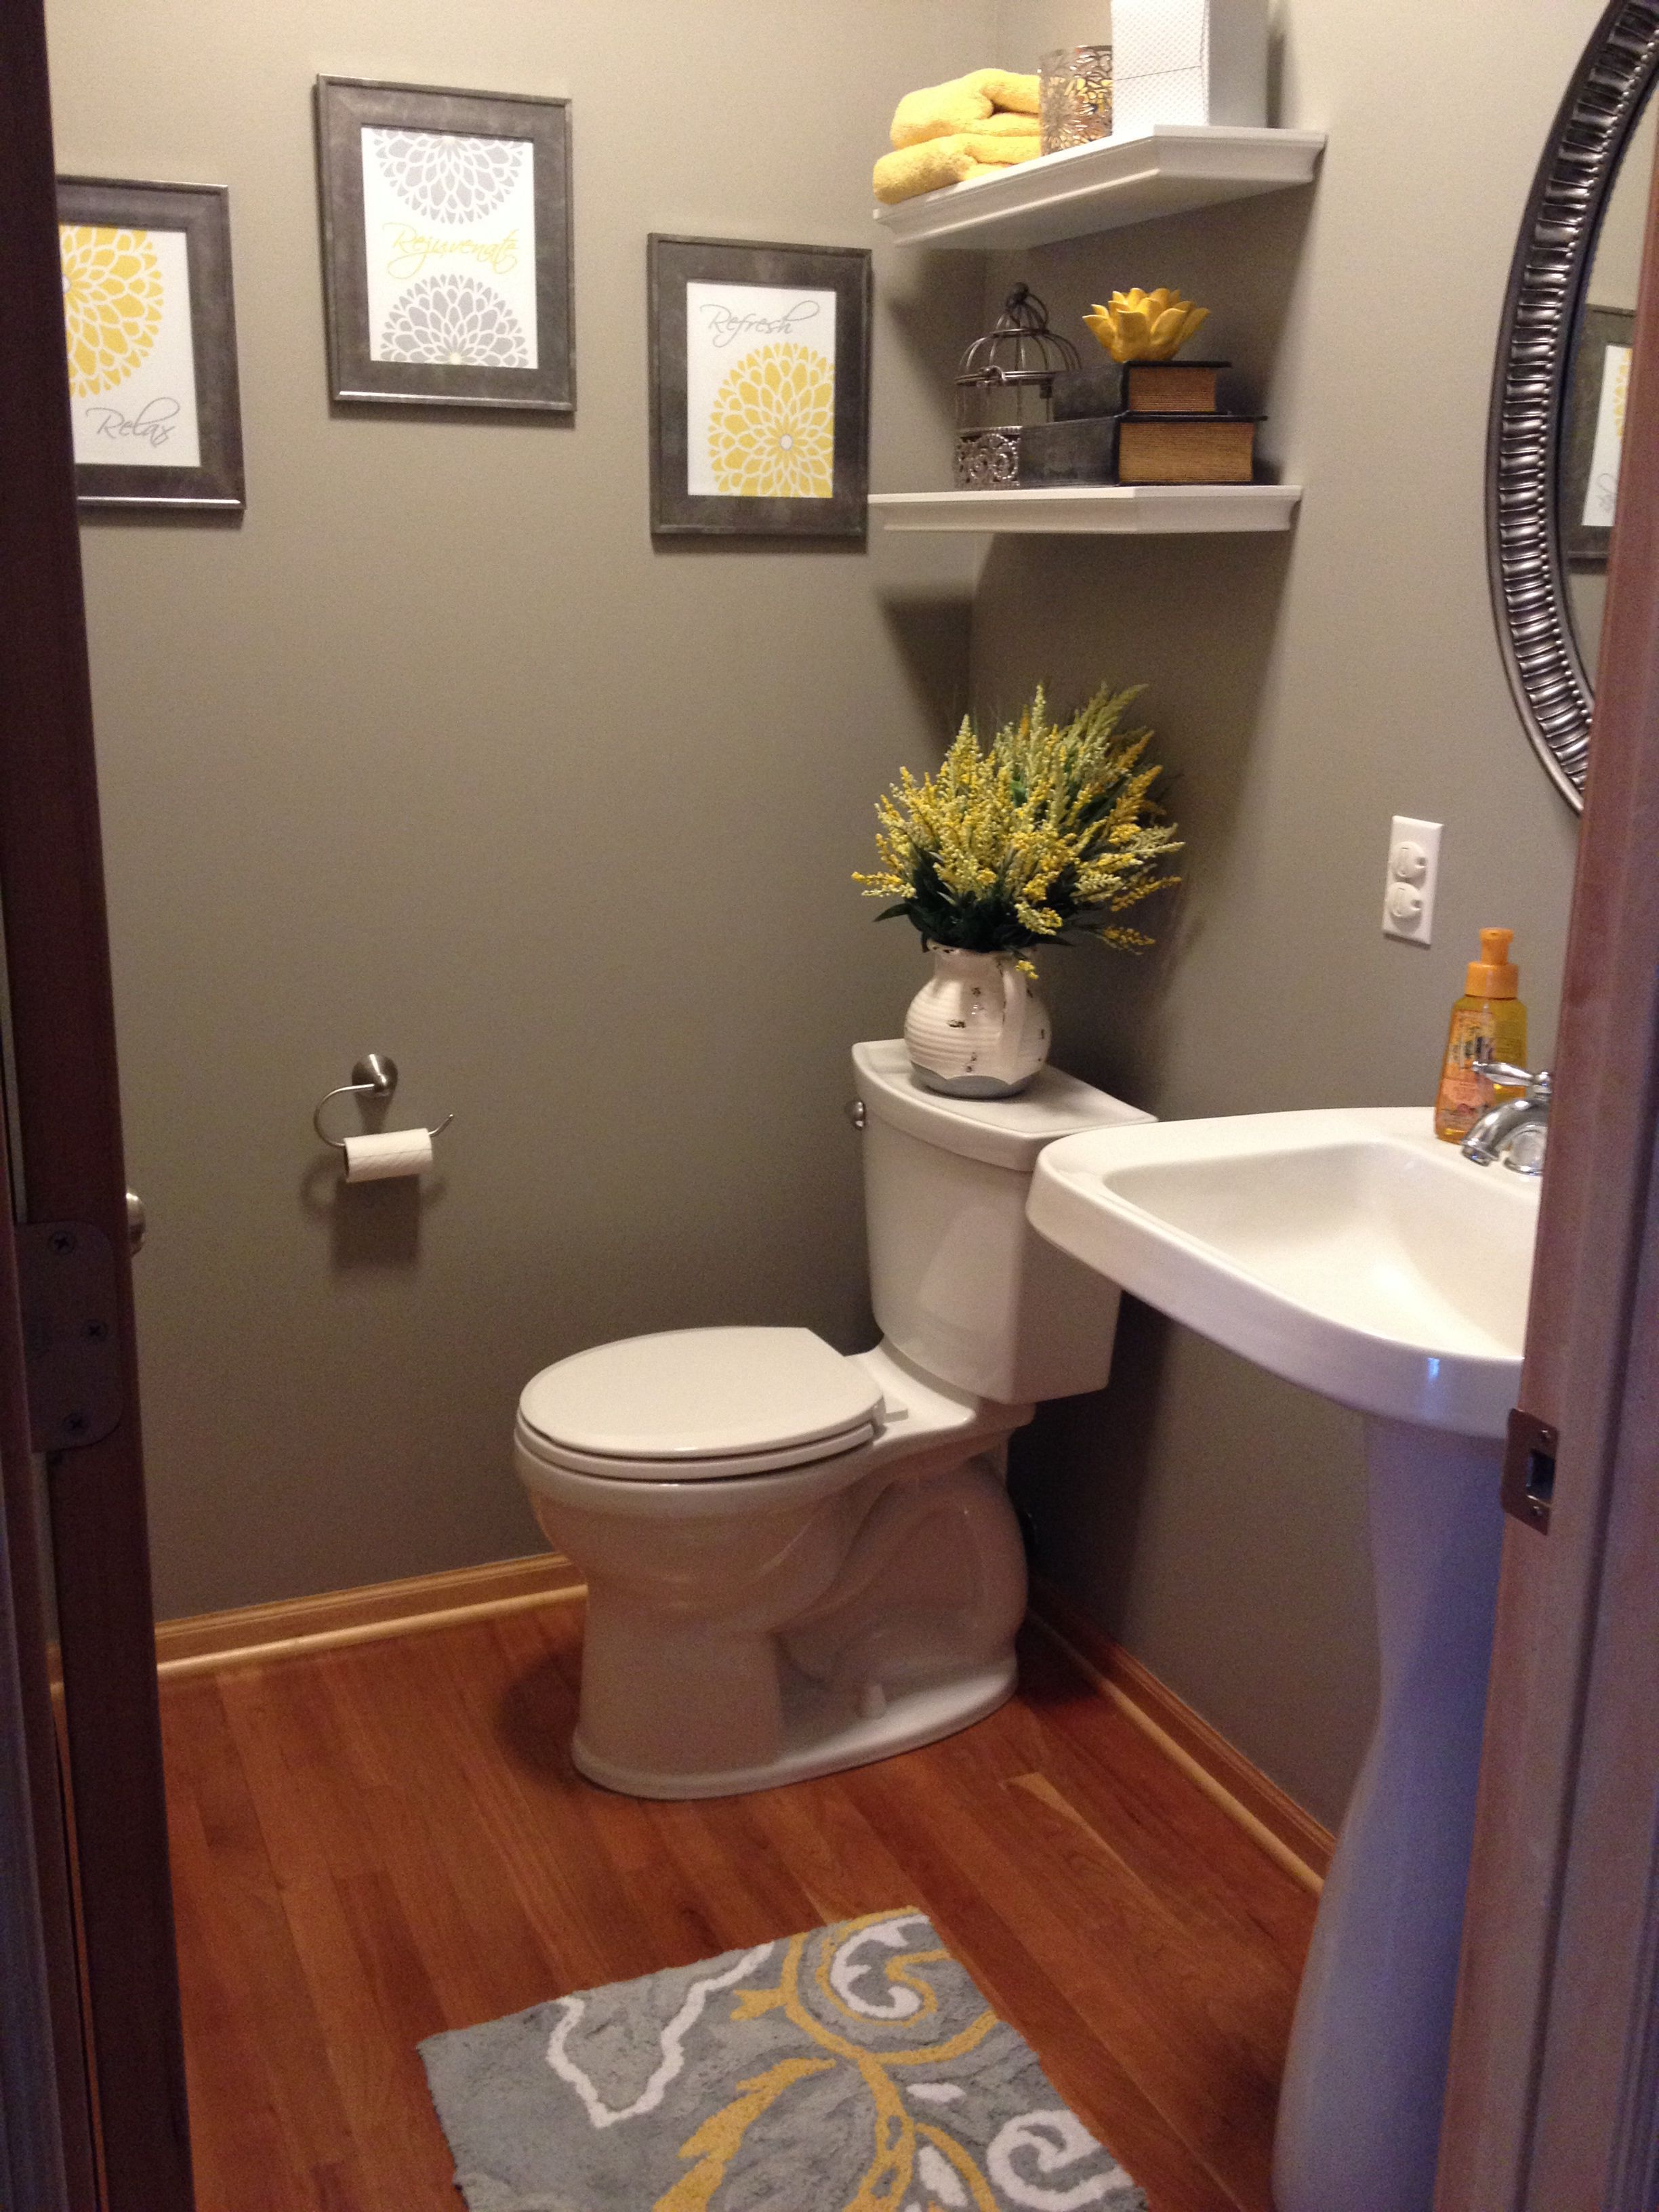 Bathroom Yellow decor pictures recommendations to wear for spring in 2019